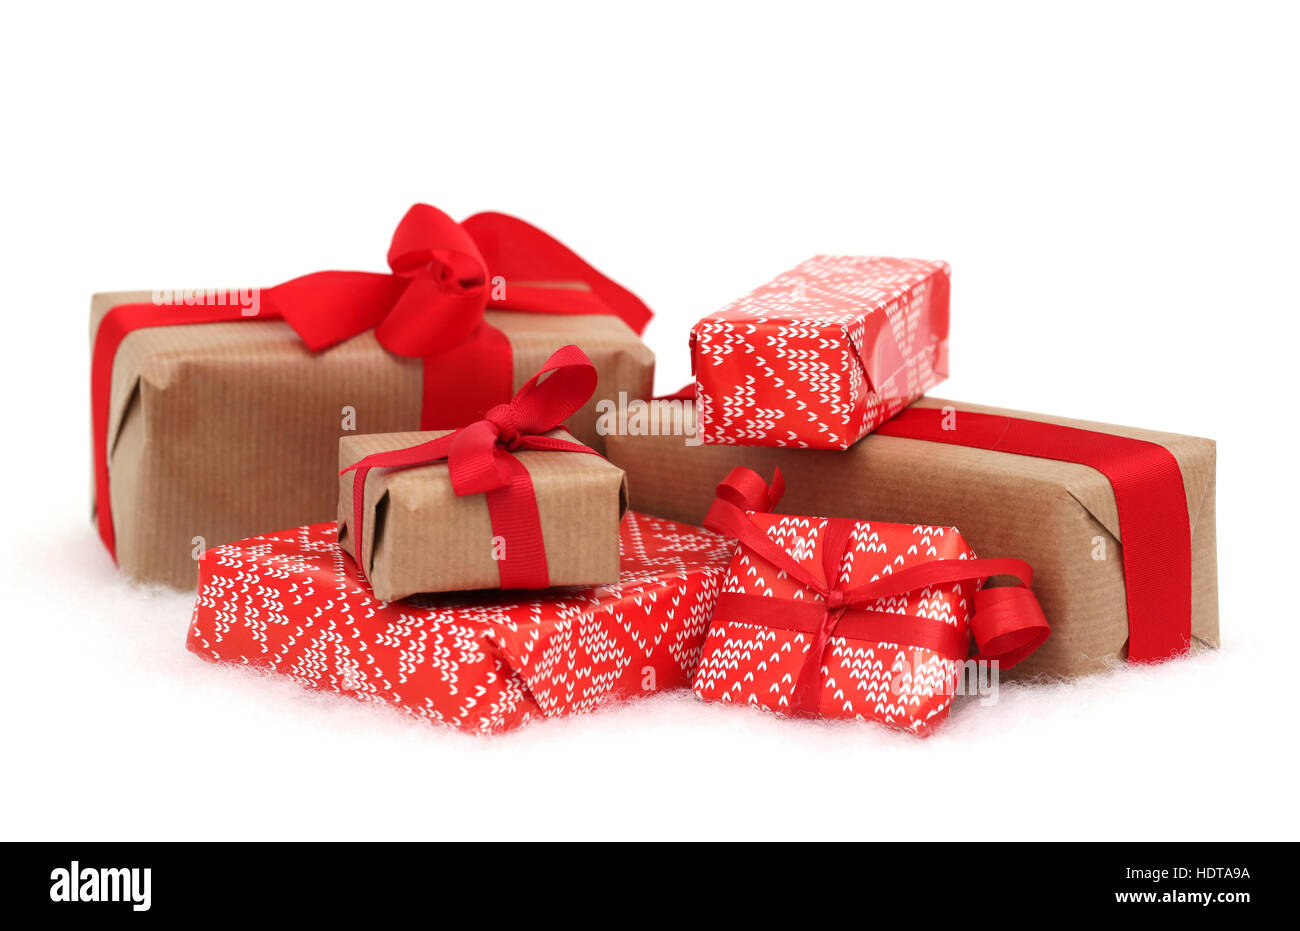 Christmas presents with red bows and ribbons against a white background - Stock Image